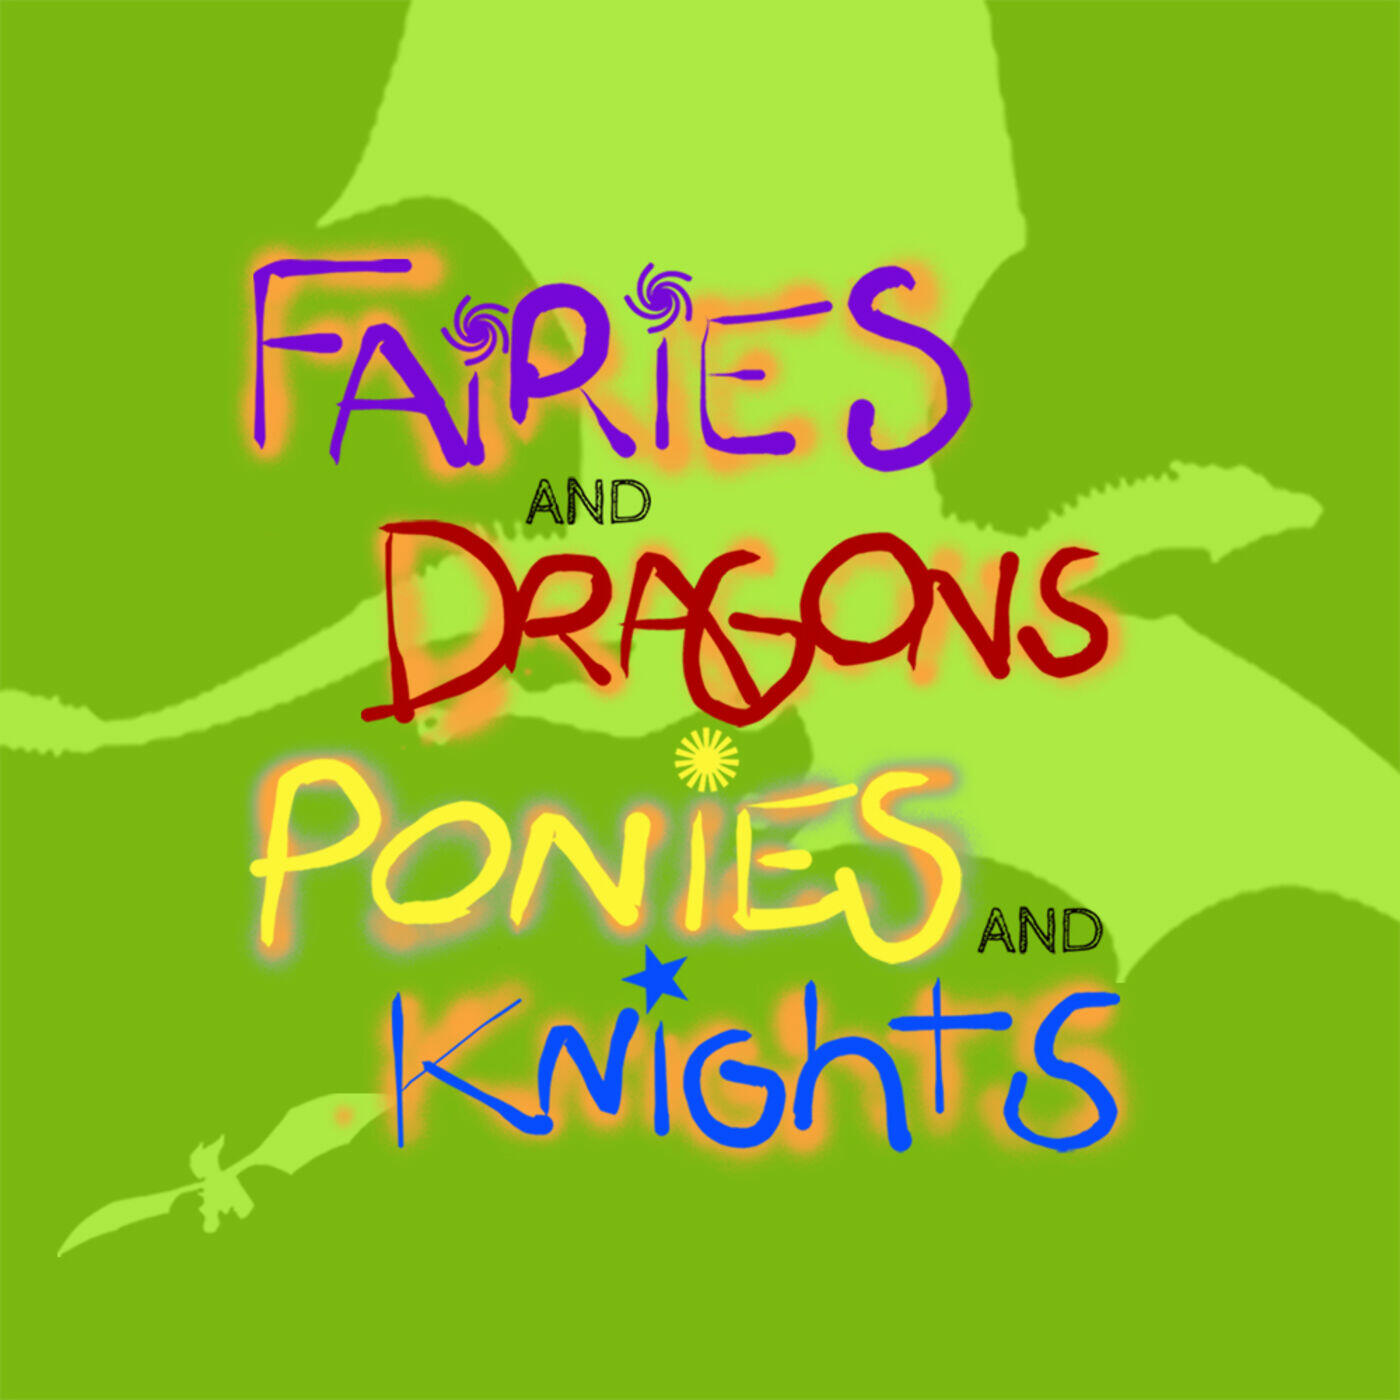 Fairies and Dragons, Ponies and Knights